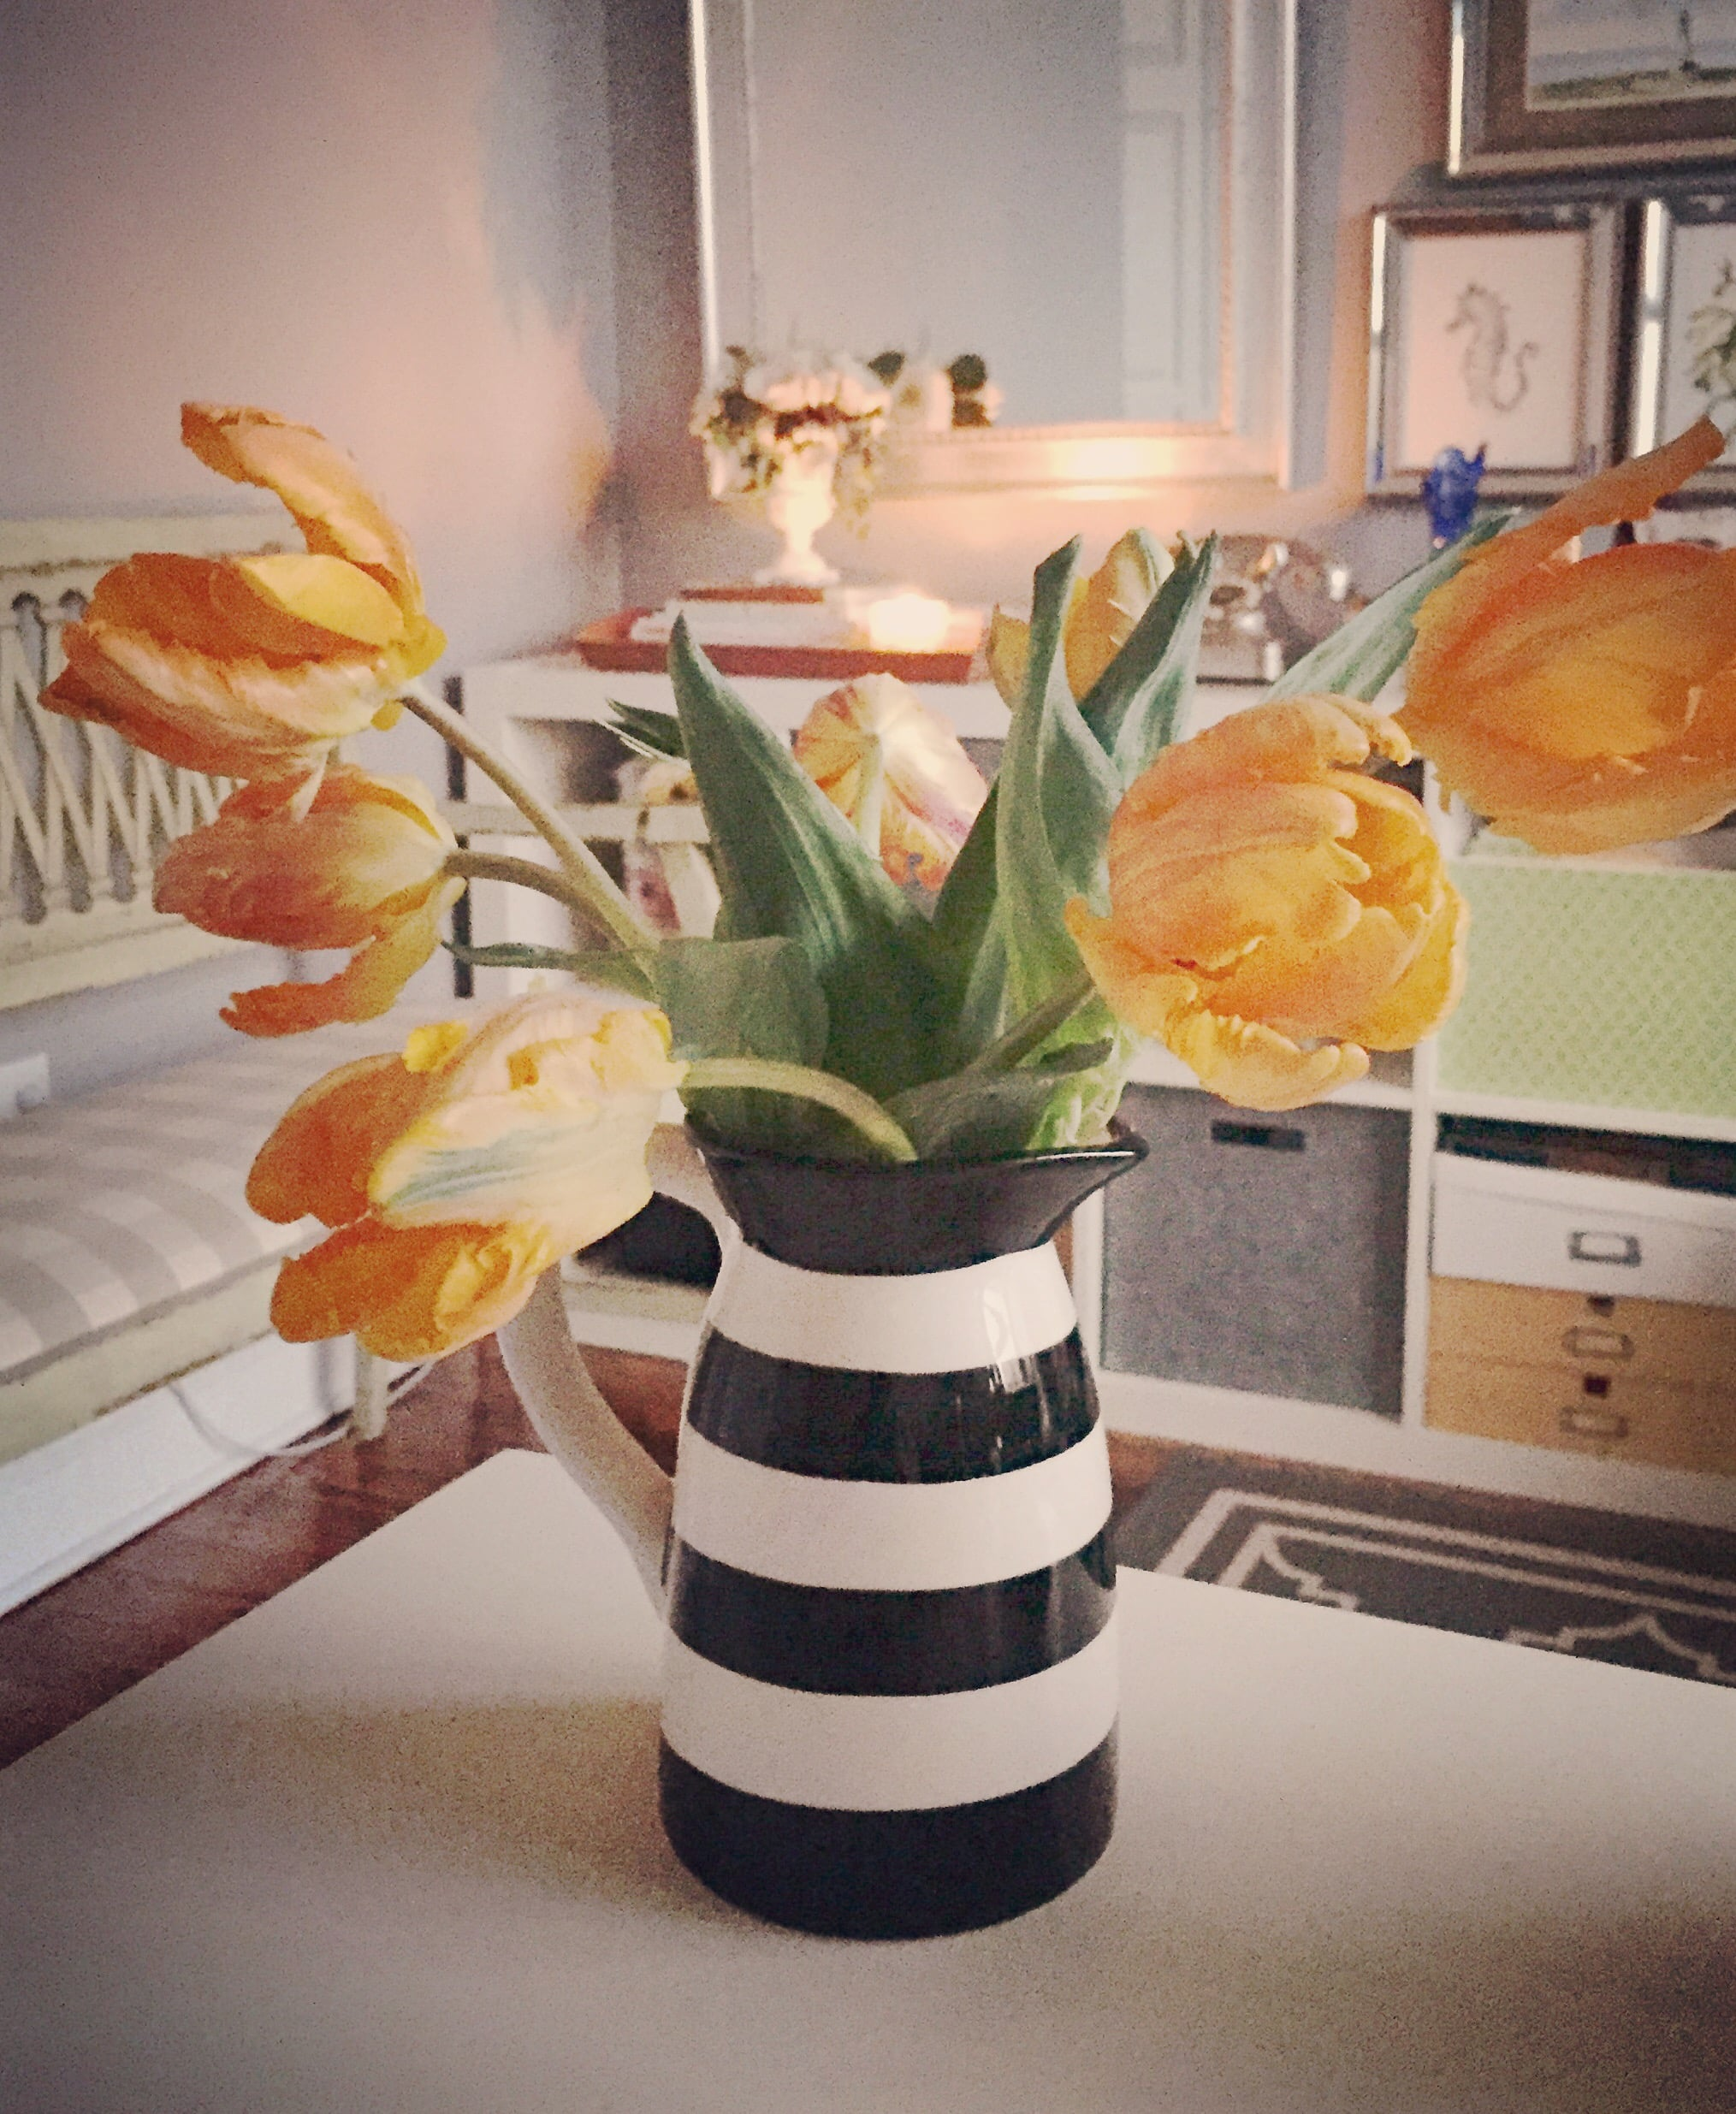 It's cozy in my studio with a few tulips and a $3 striped pitcher from Target!